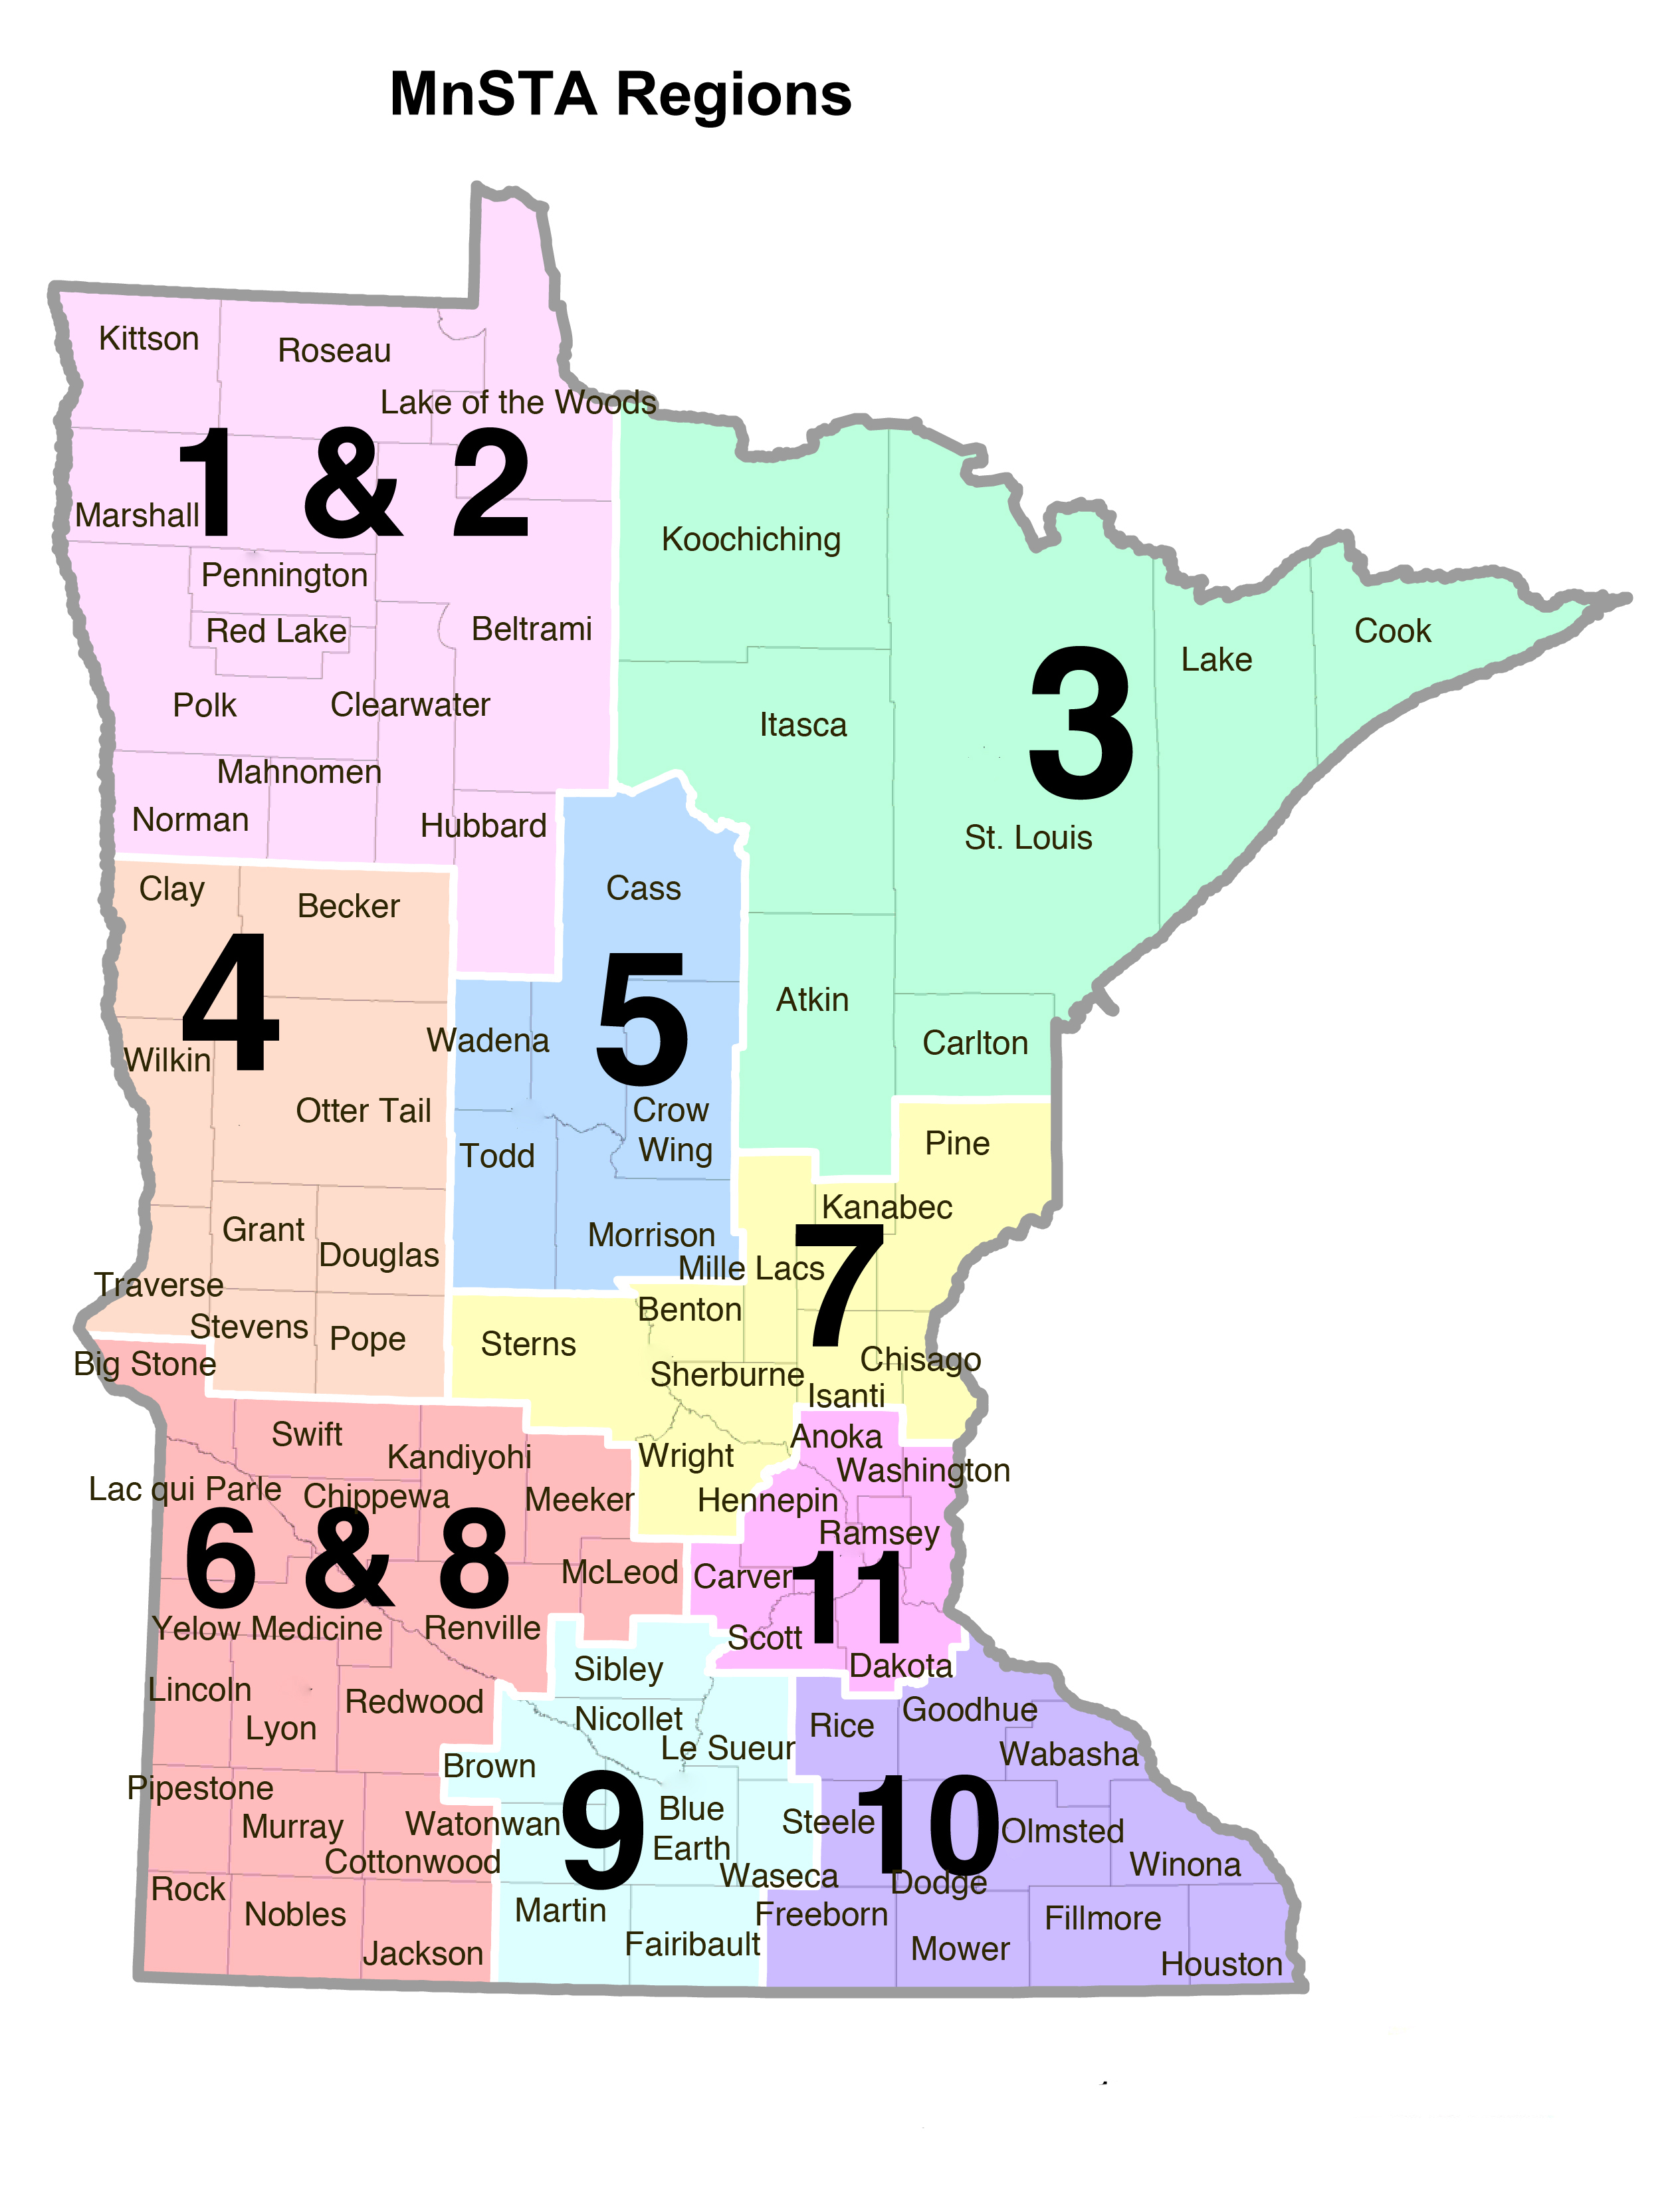 MnSTA_Regions_map_by_county_V2.jpg